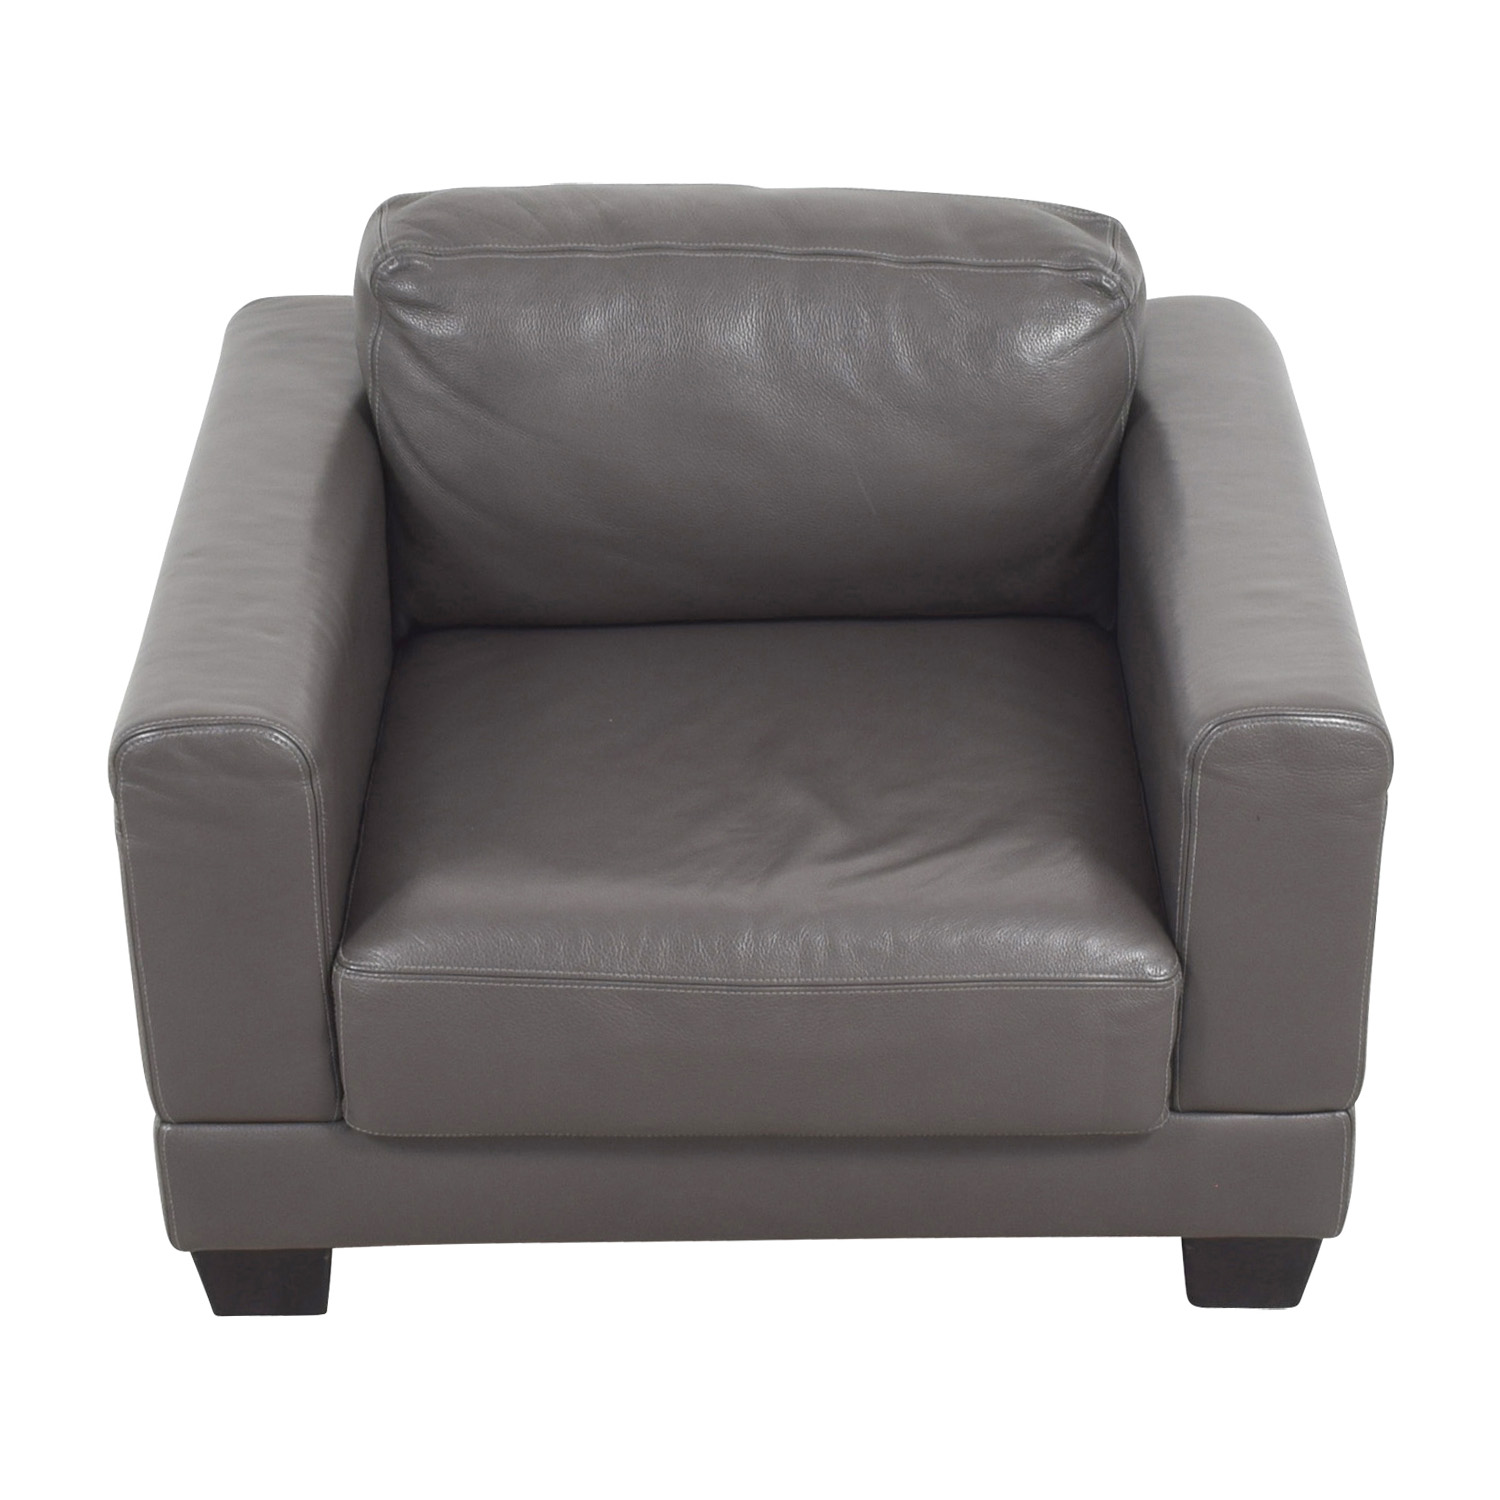 Gray Leather Armchair / Chairs